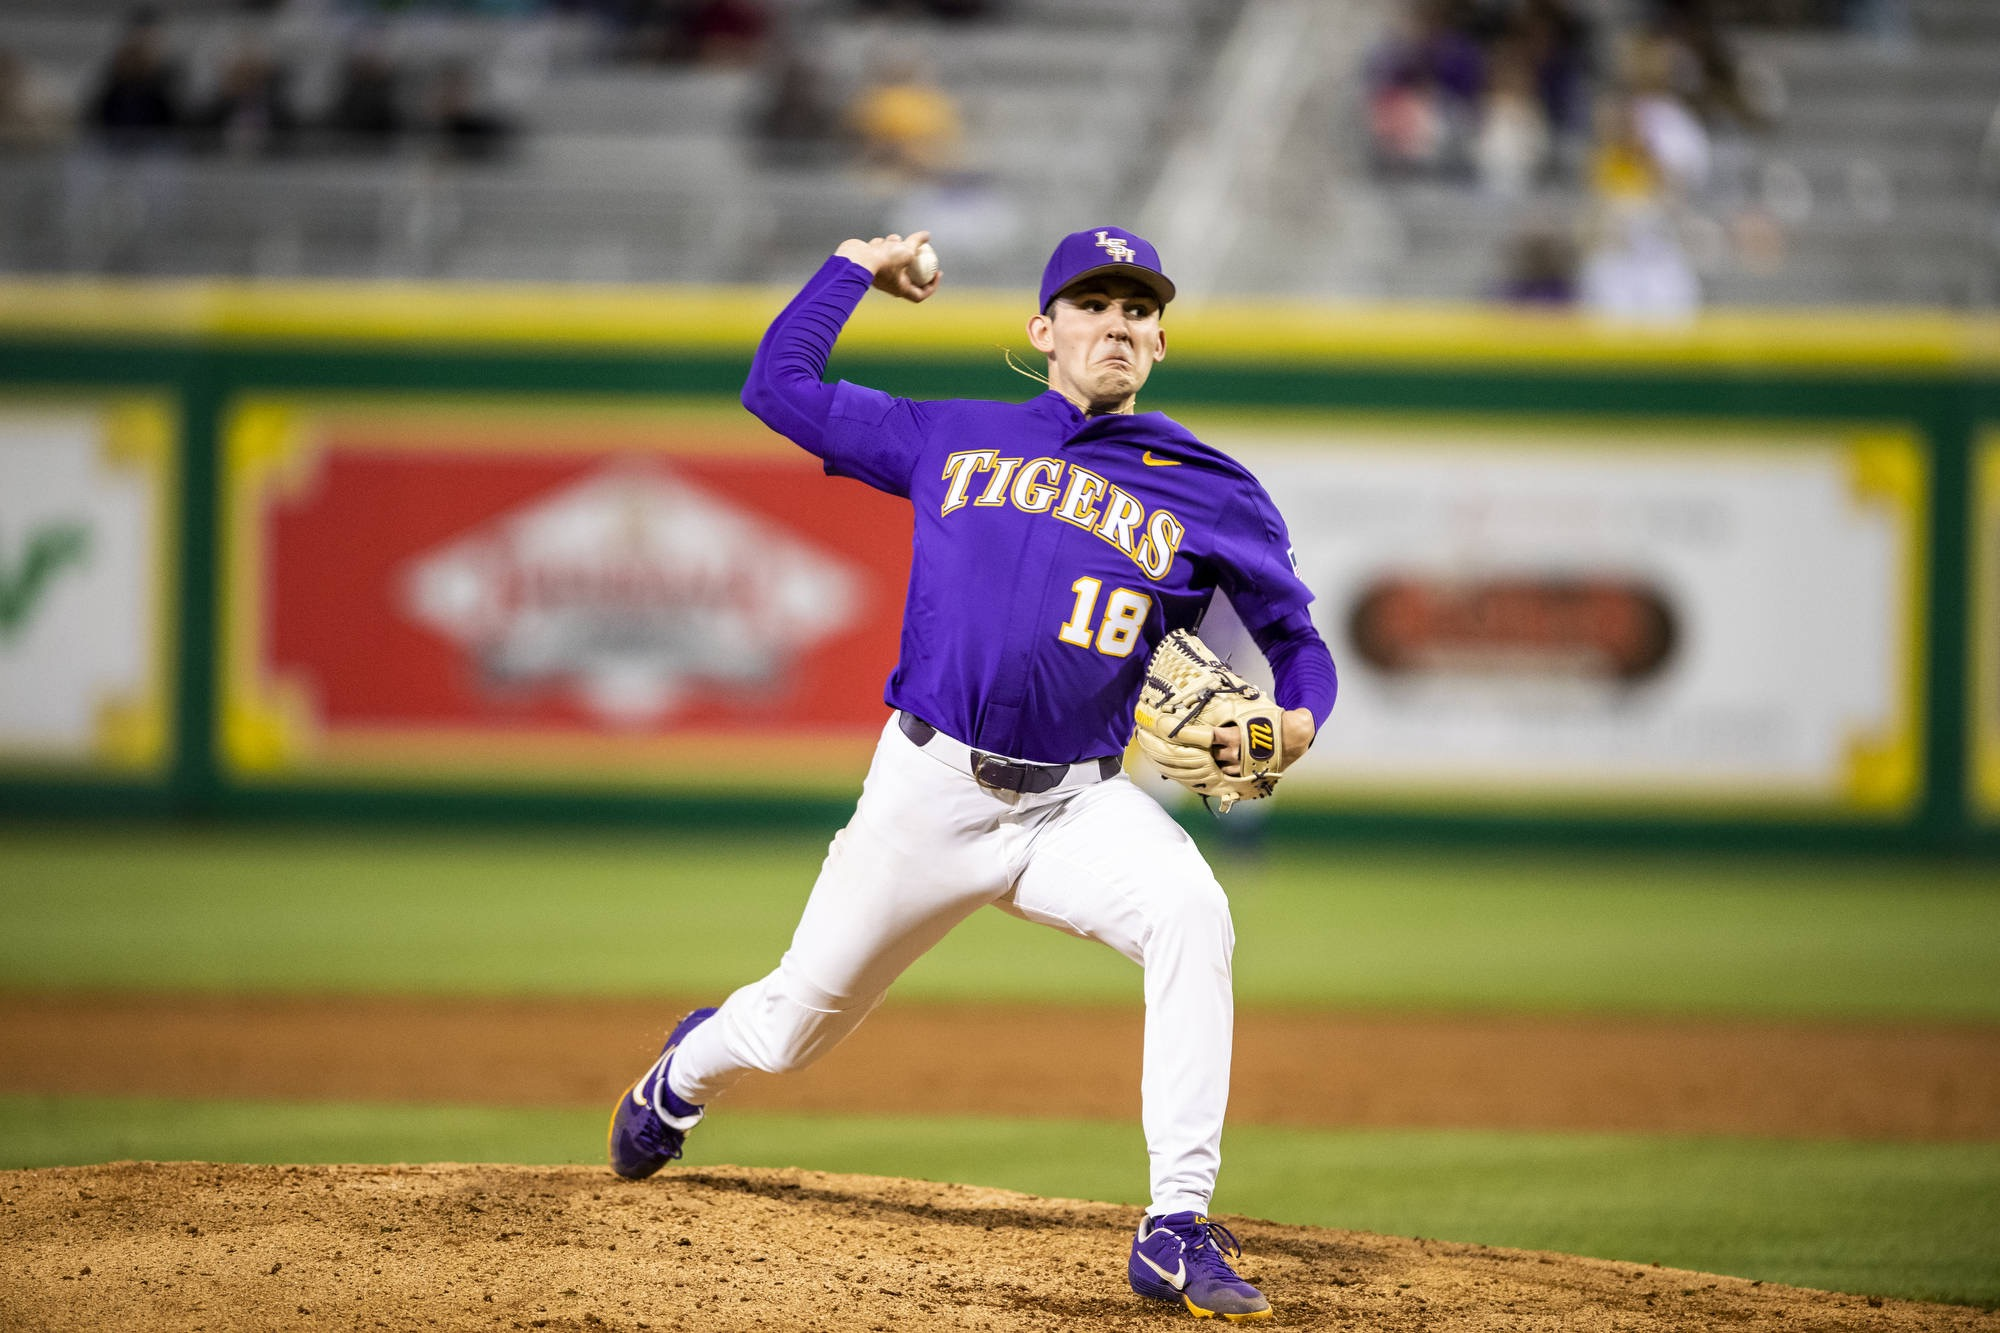 LSU Baseball rises in the polls after series win